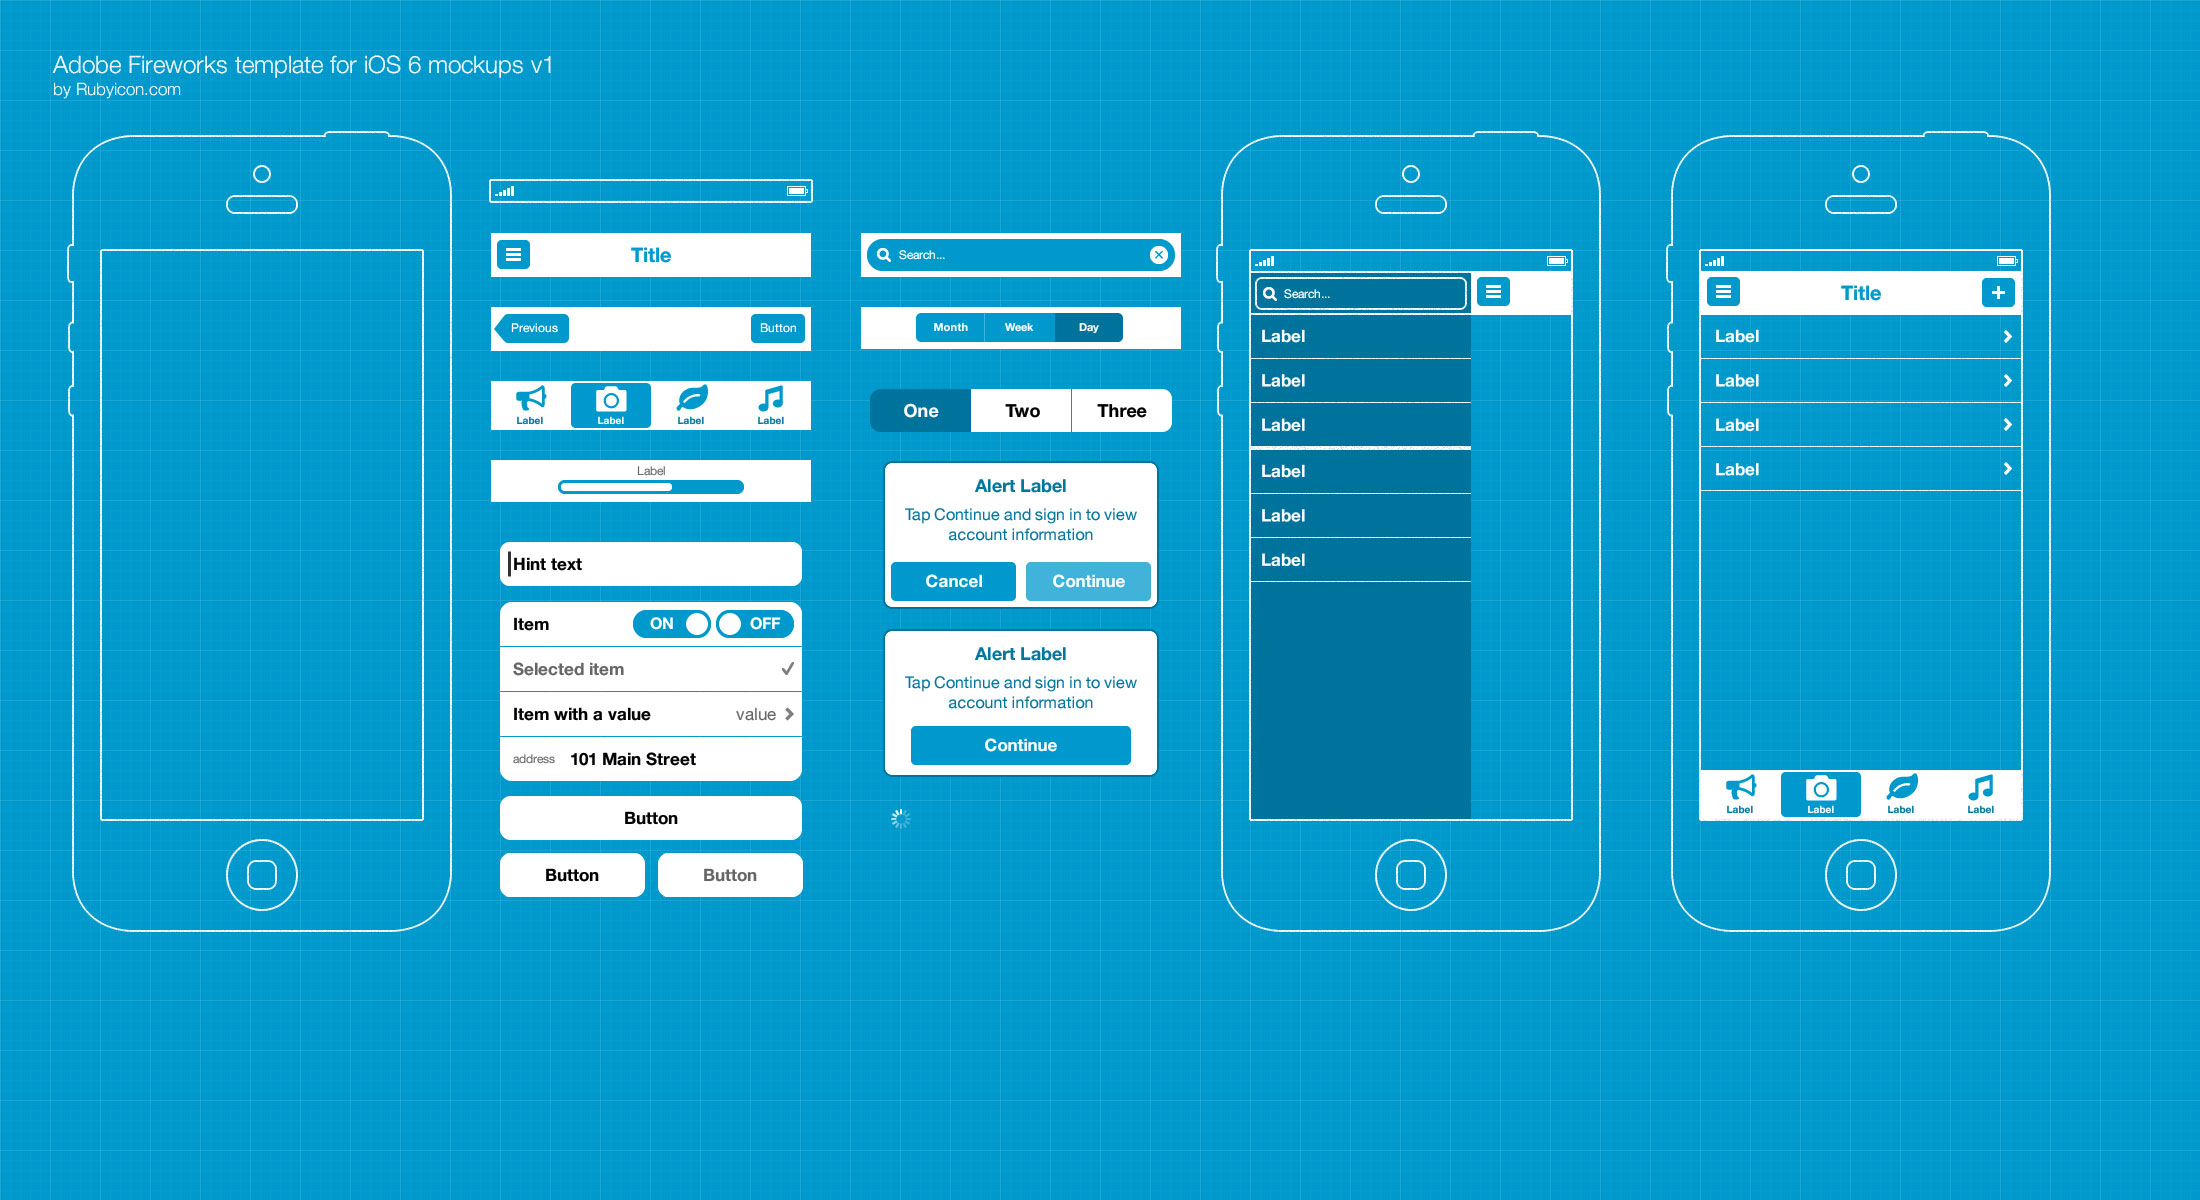 Free adobe fw template for ios 6 wireframing blueprints Blueprint designer free